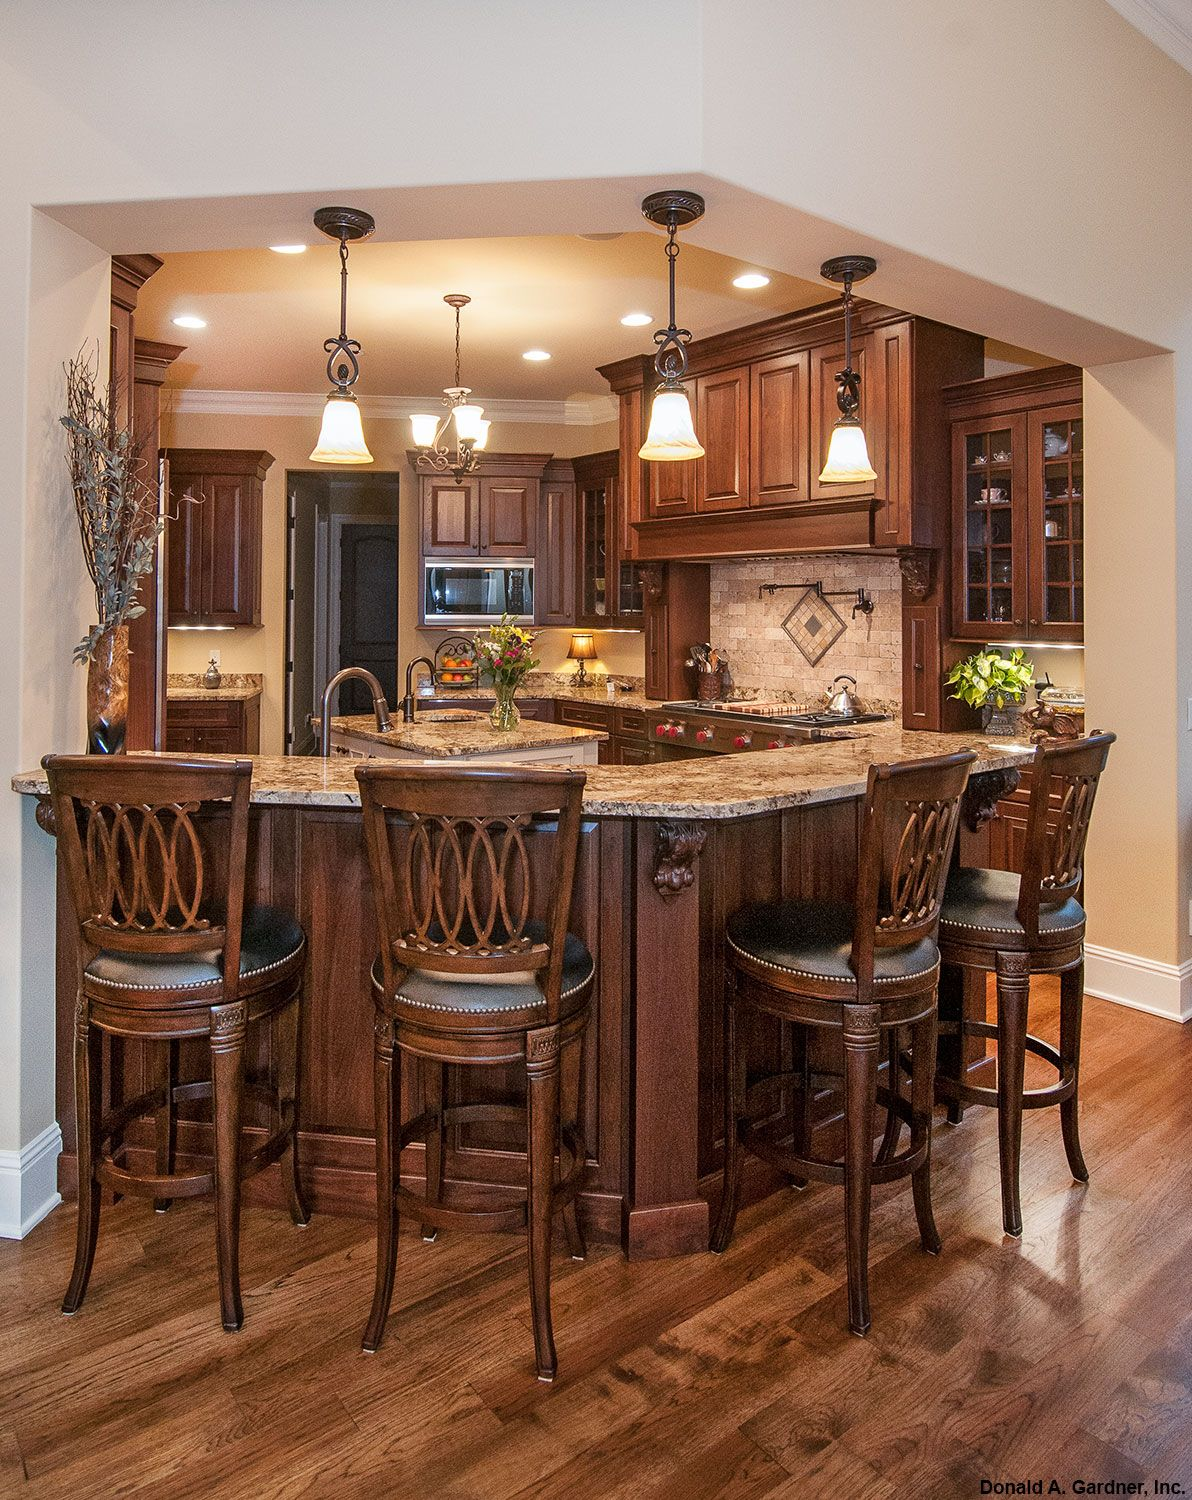 This gourmet kitchen features a bar that comfortably seats Gourmet kitchen plans